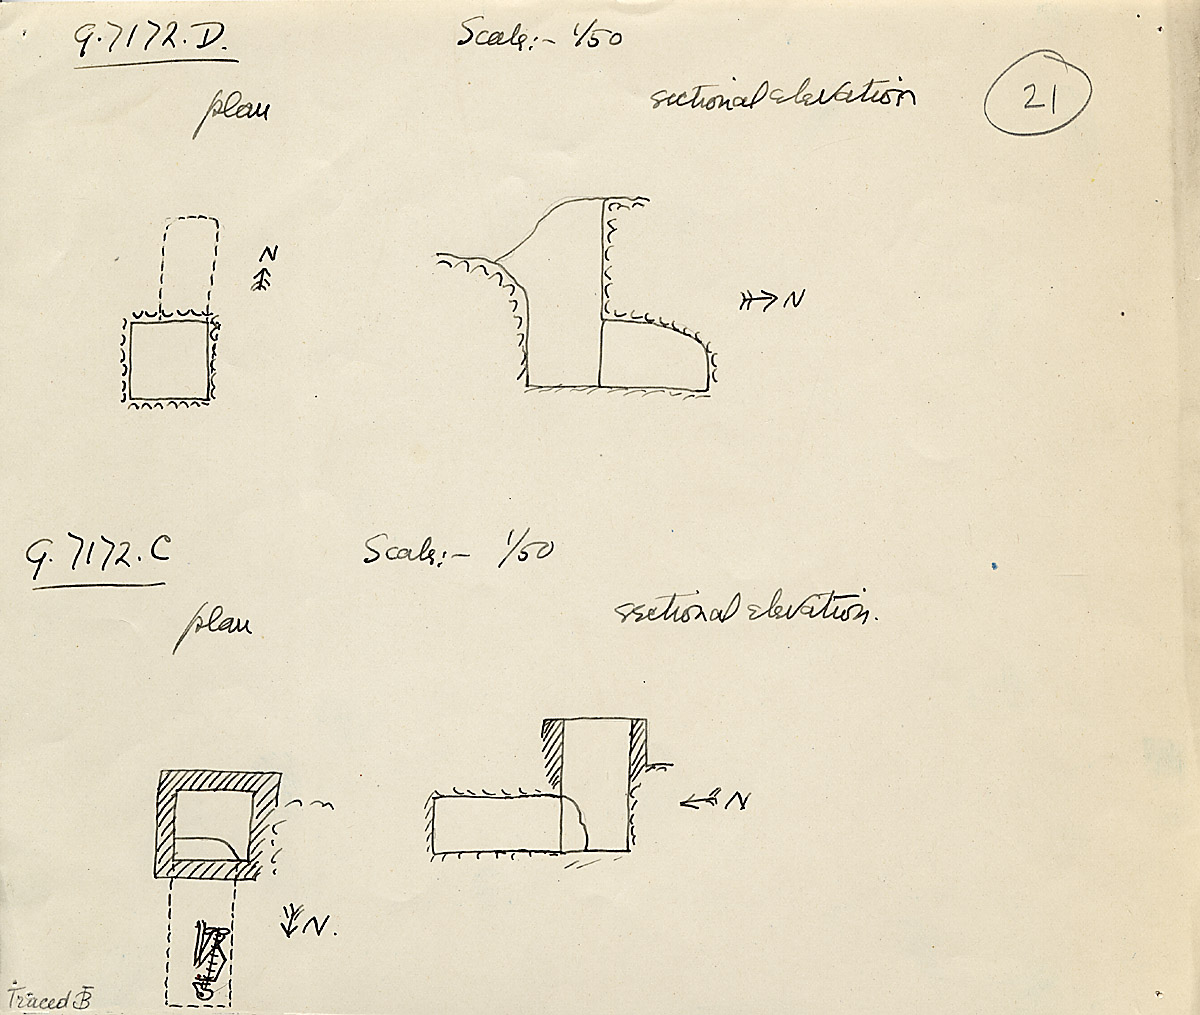 Maps and plans: G 7172, Shaft C and D